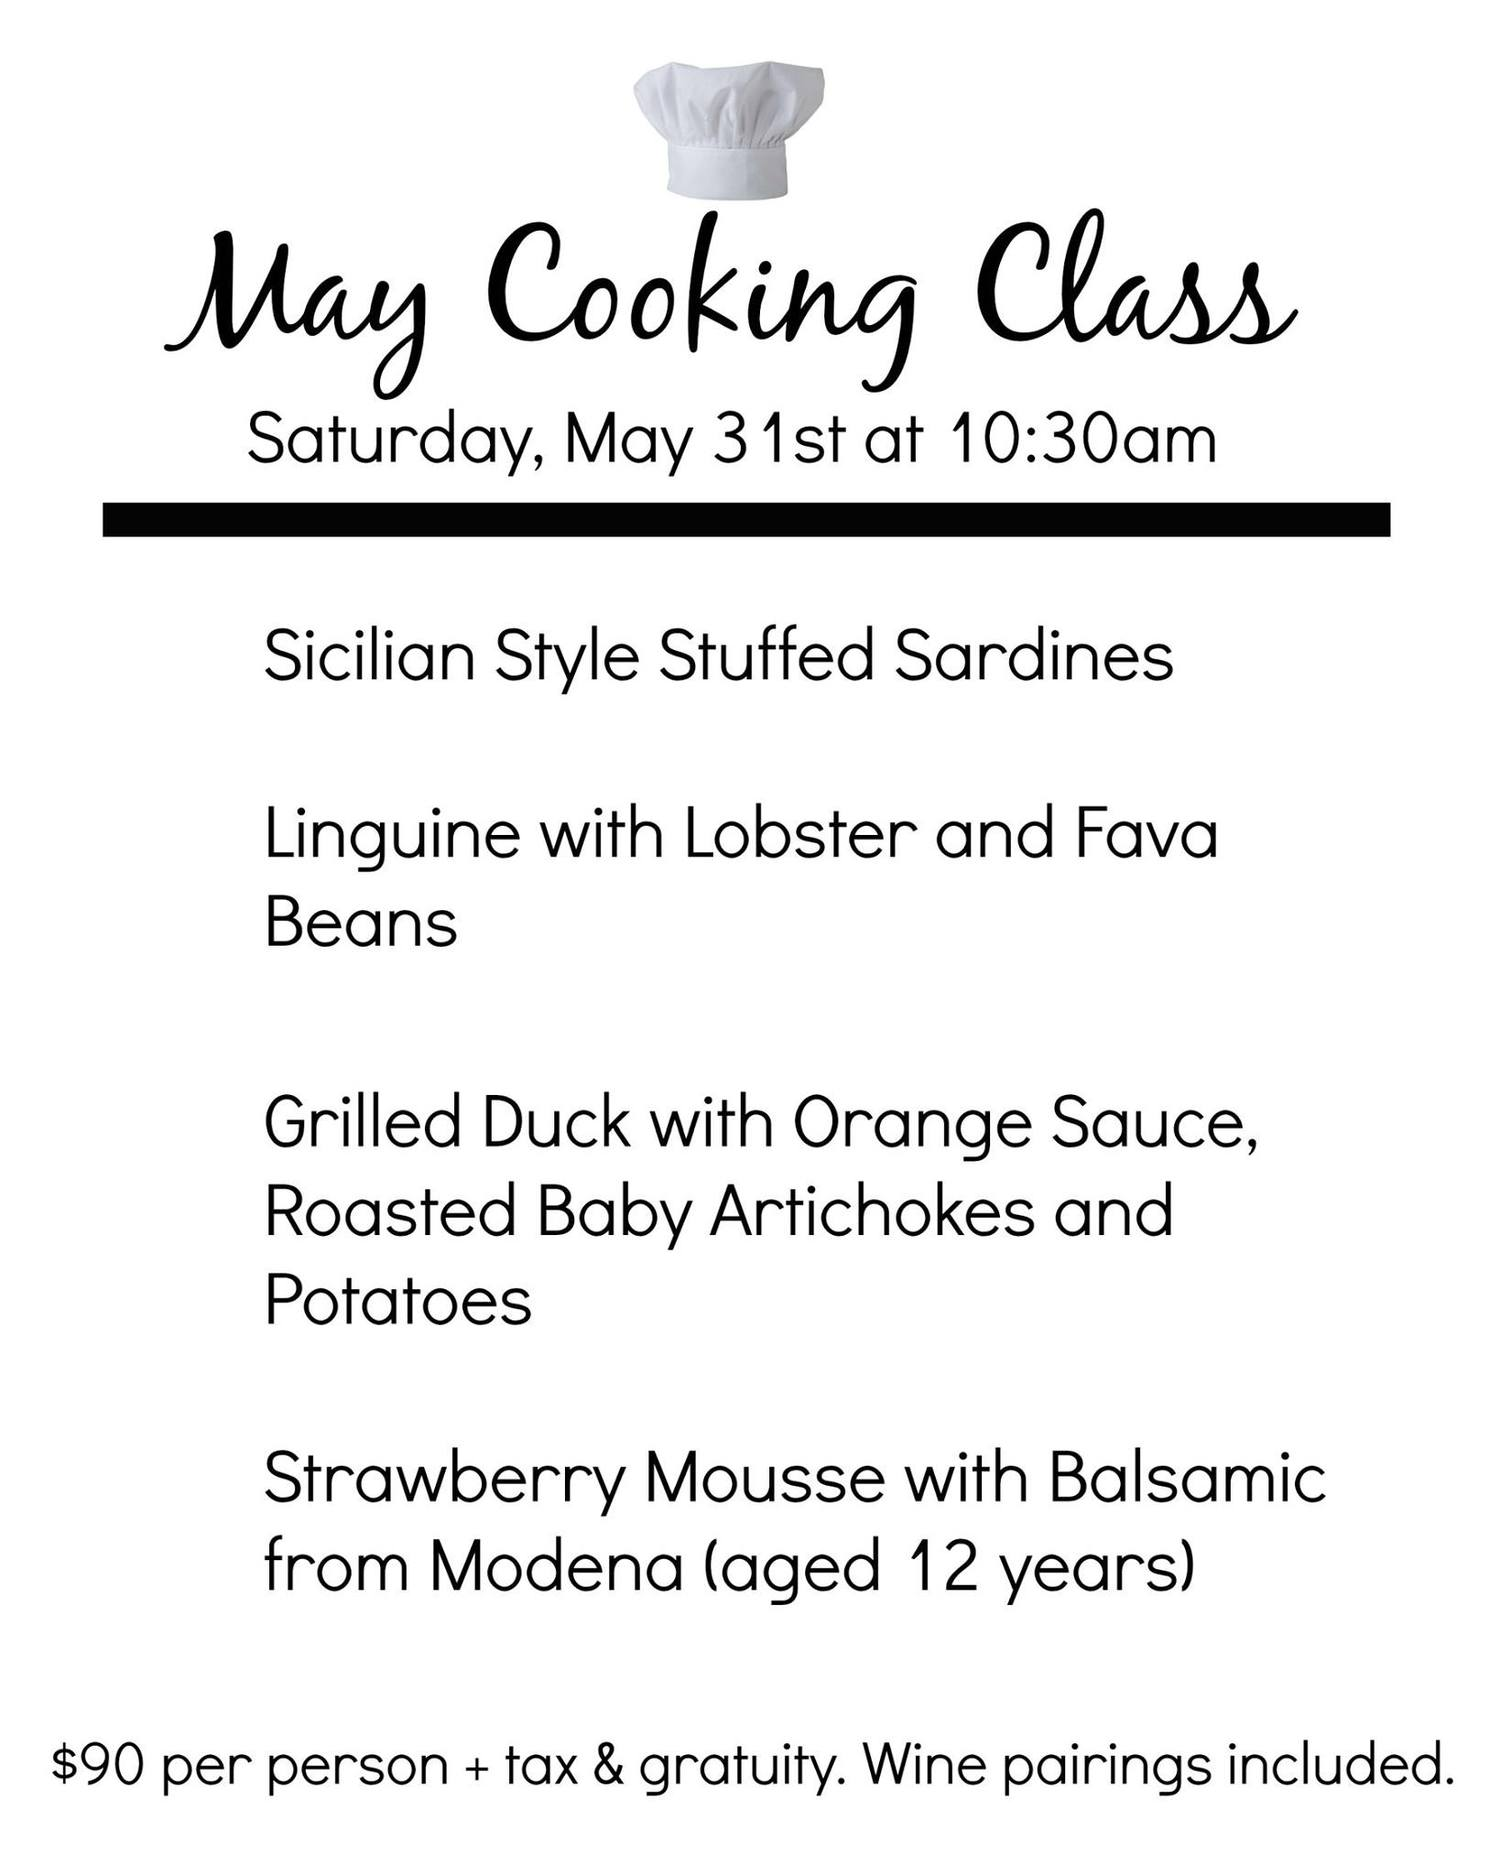 May Cooking Class — Amici Miei Ristorante | Traditional & Elegant